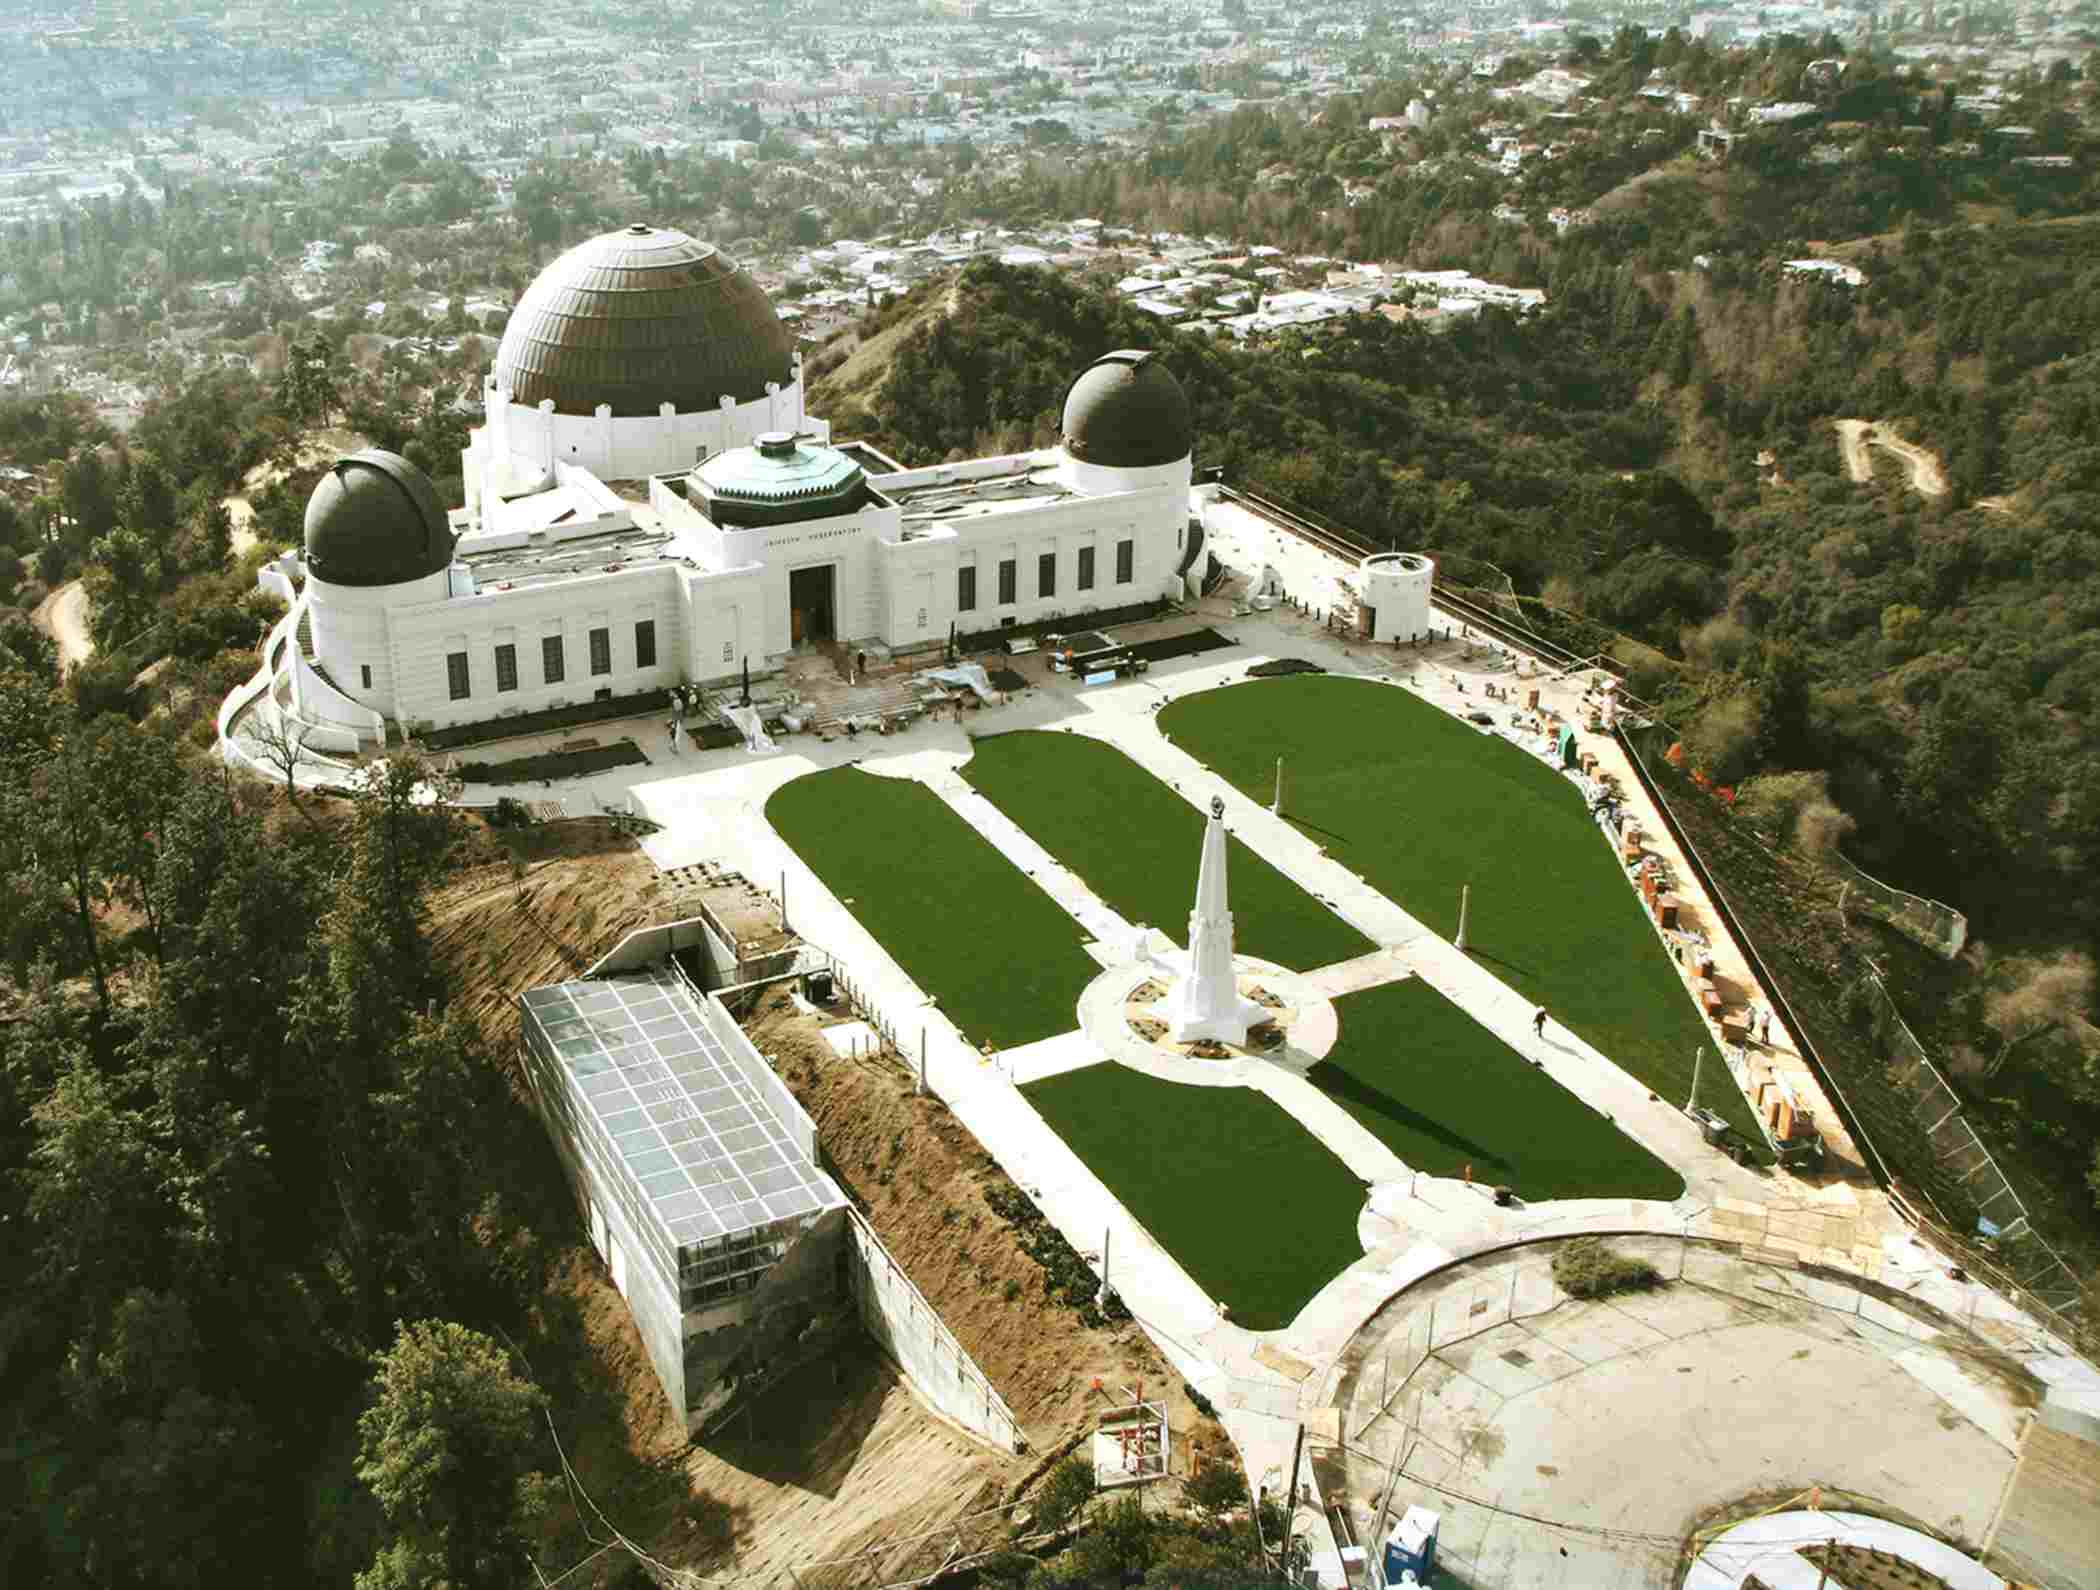 Griffith Observatory from the air.